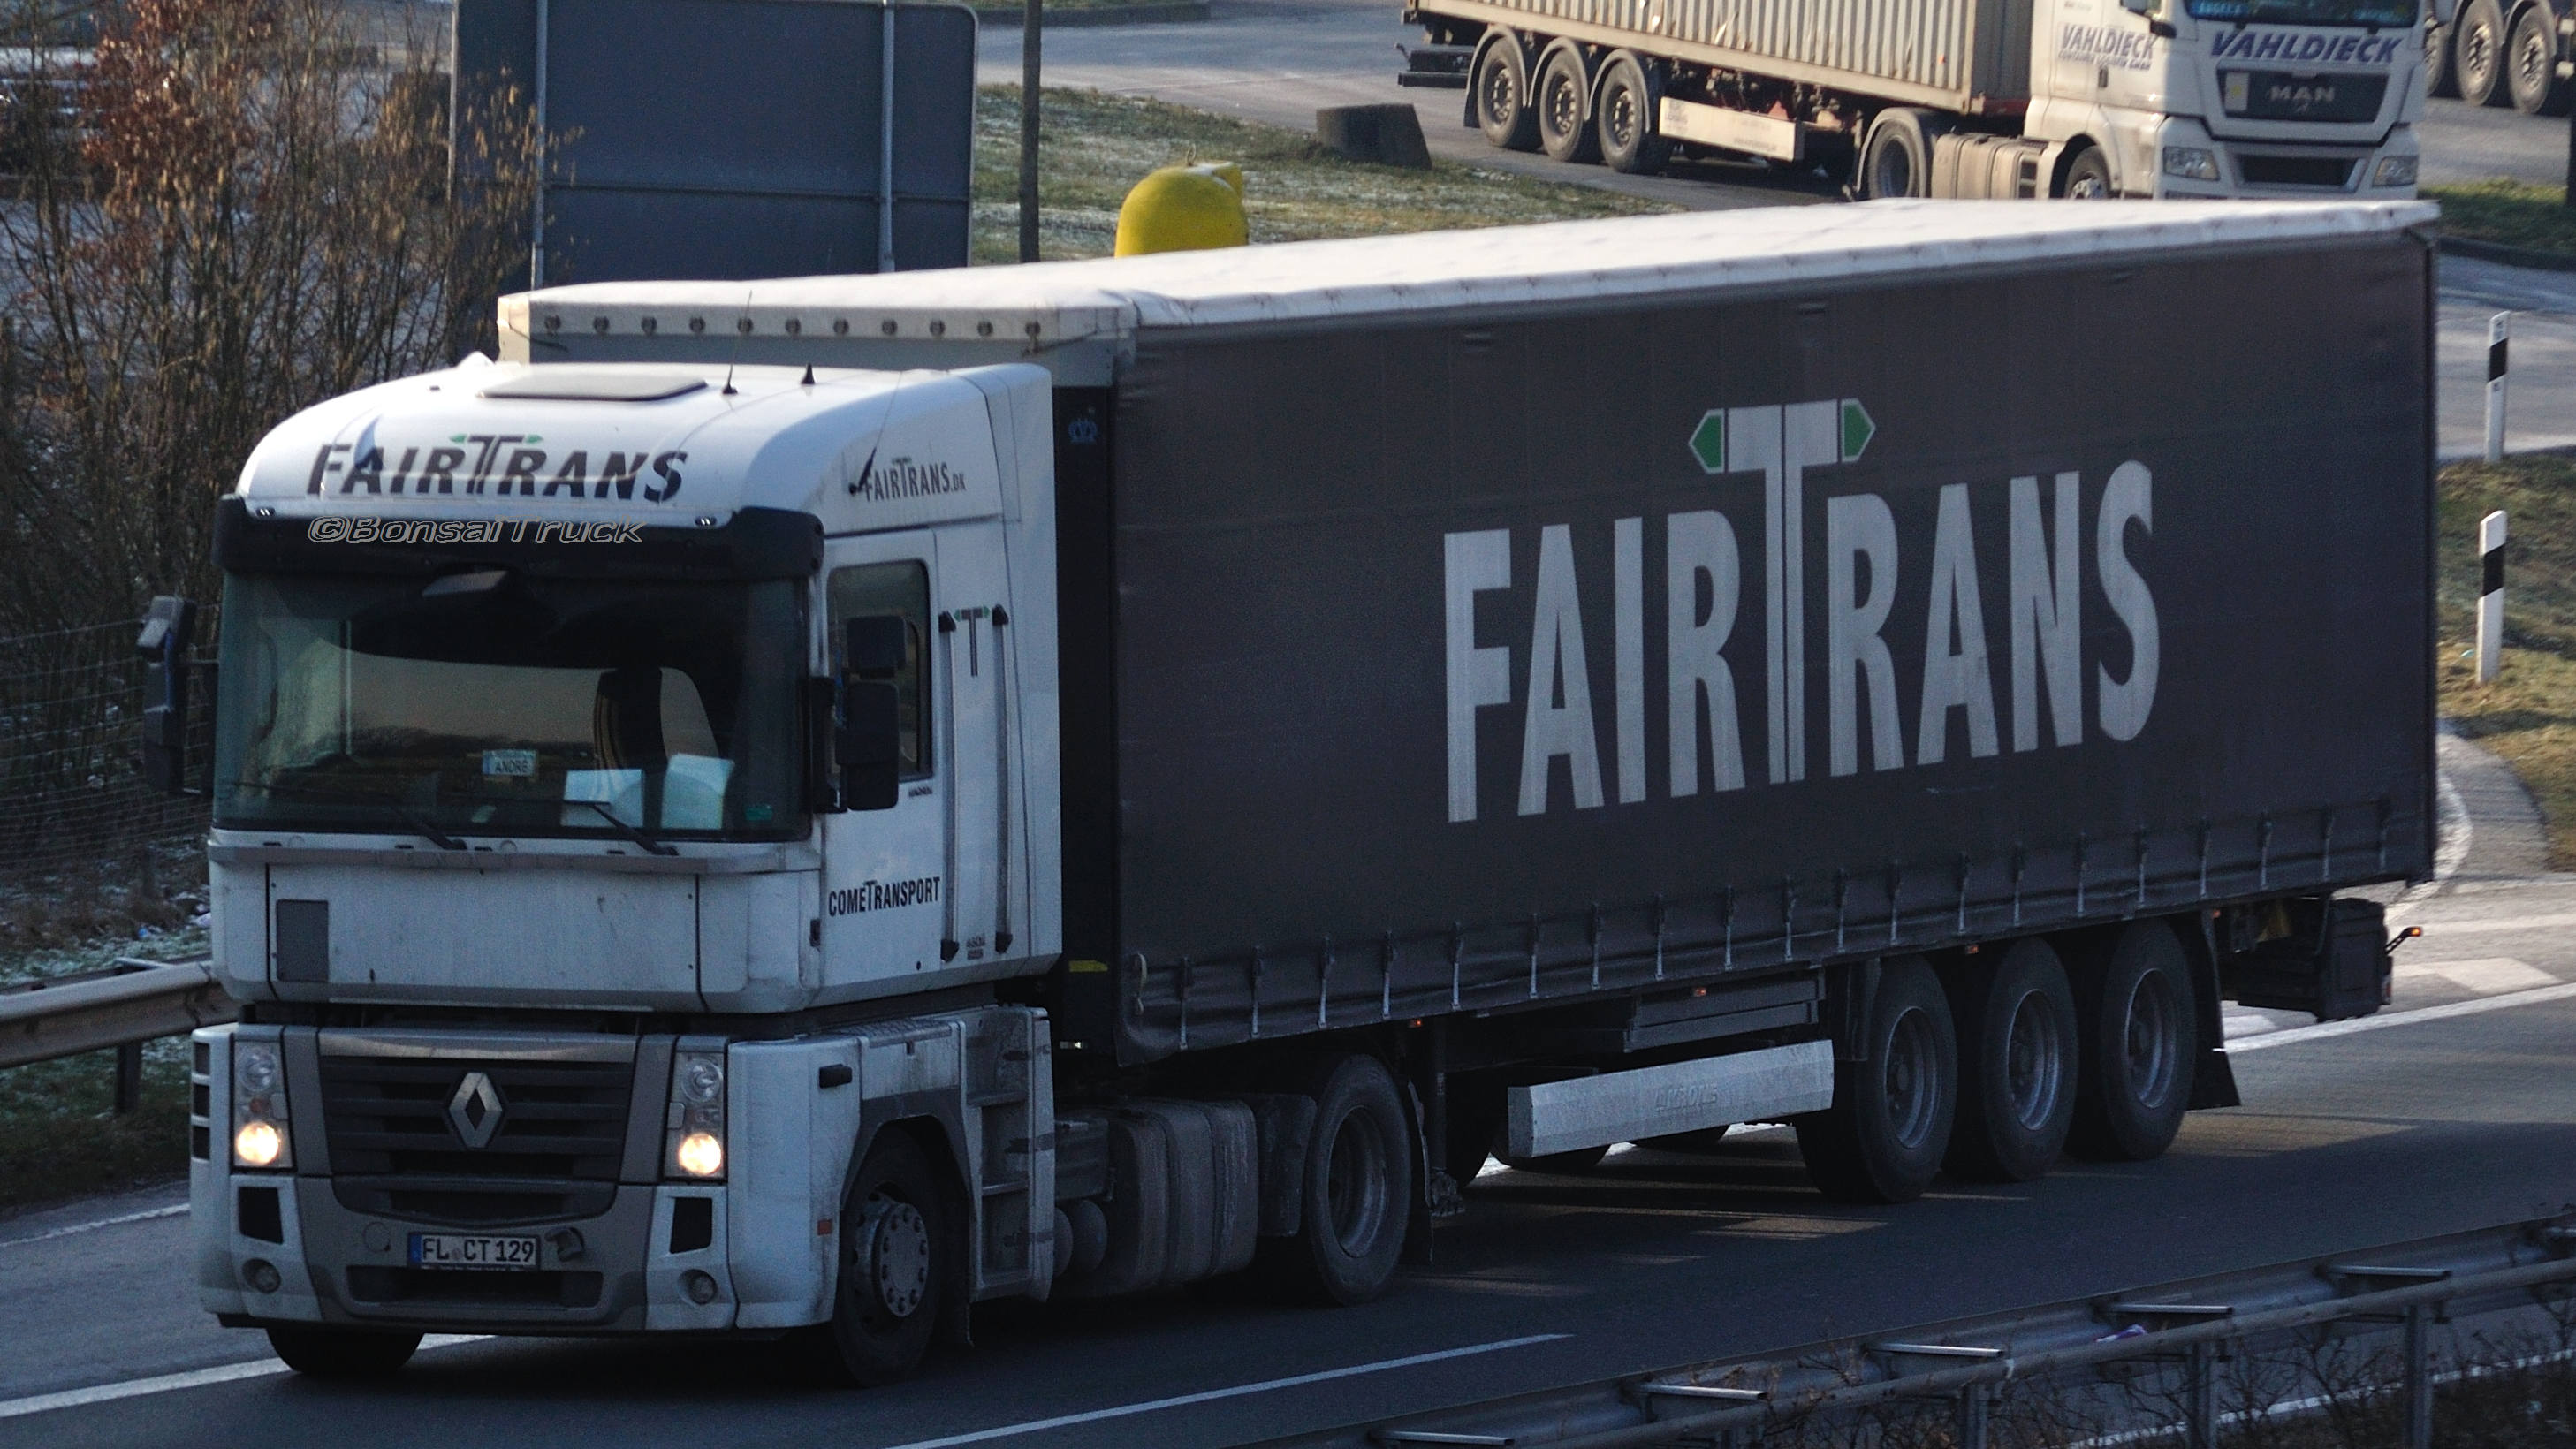 D - Cometransport Fairtrans Renault Magnum | Flickr - Photo Sharing!